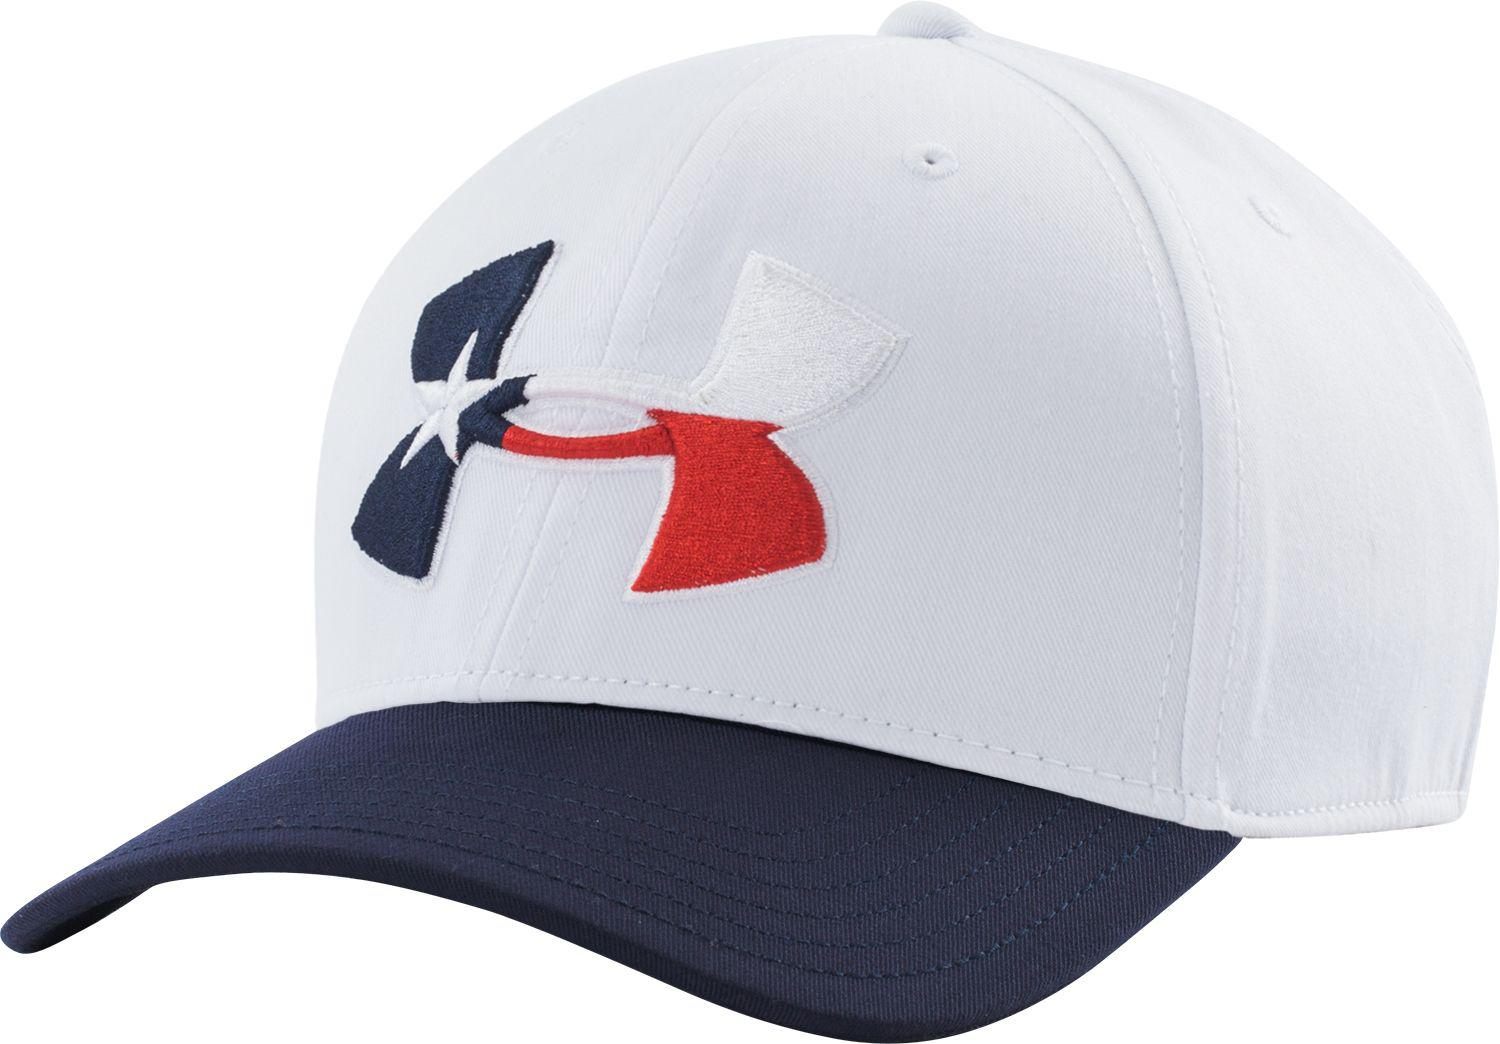 Lyst - Under Armour Texas Flag Big Logo Low Crown Hat in Blue for Men f1950c61976